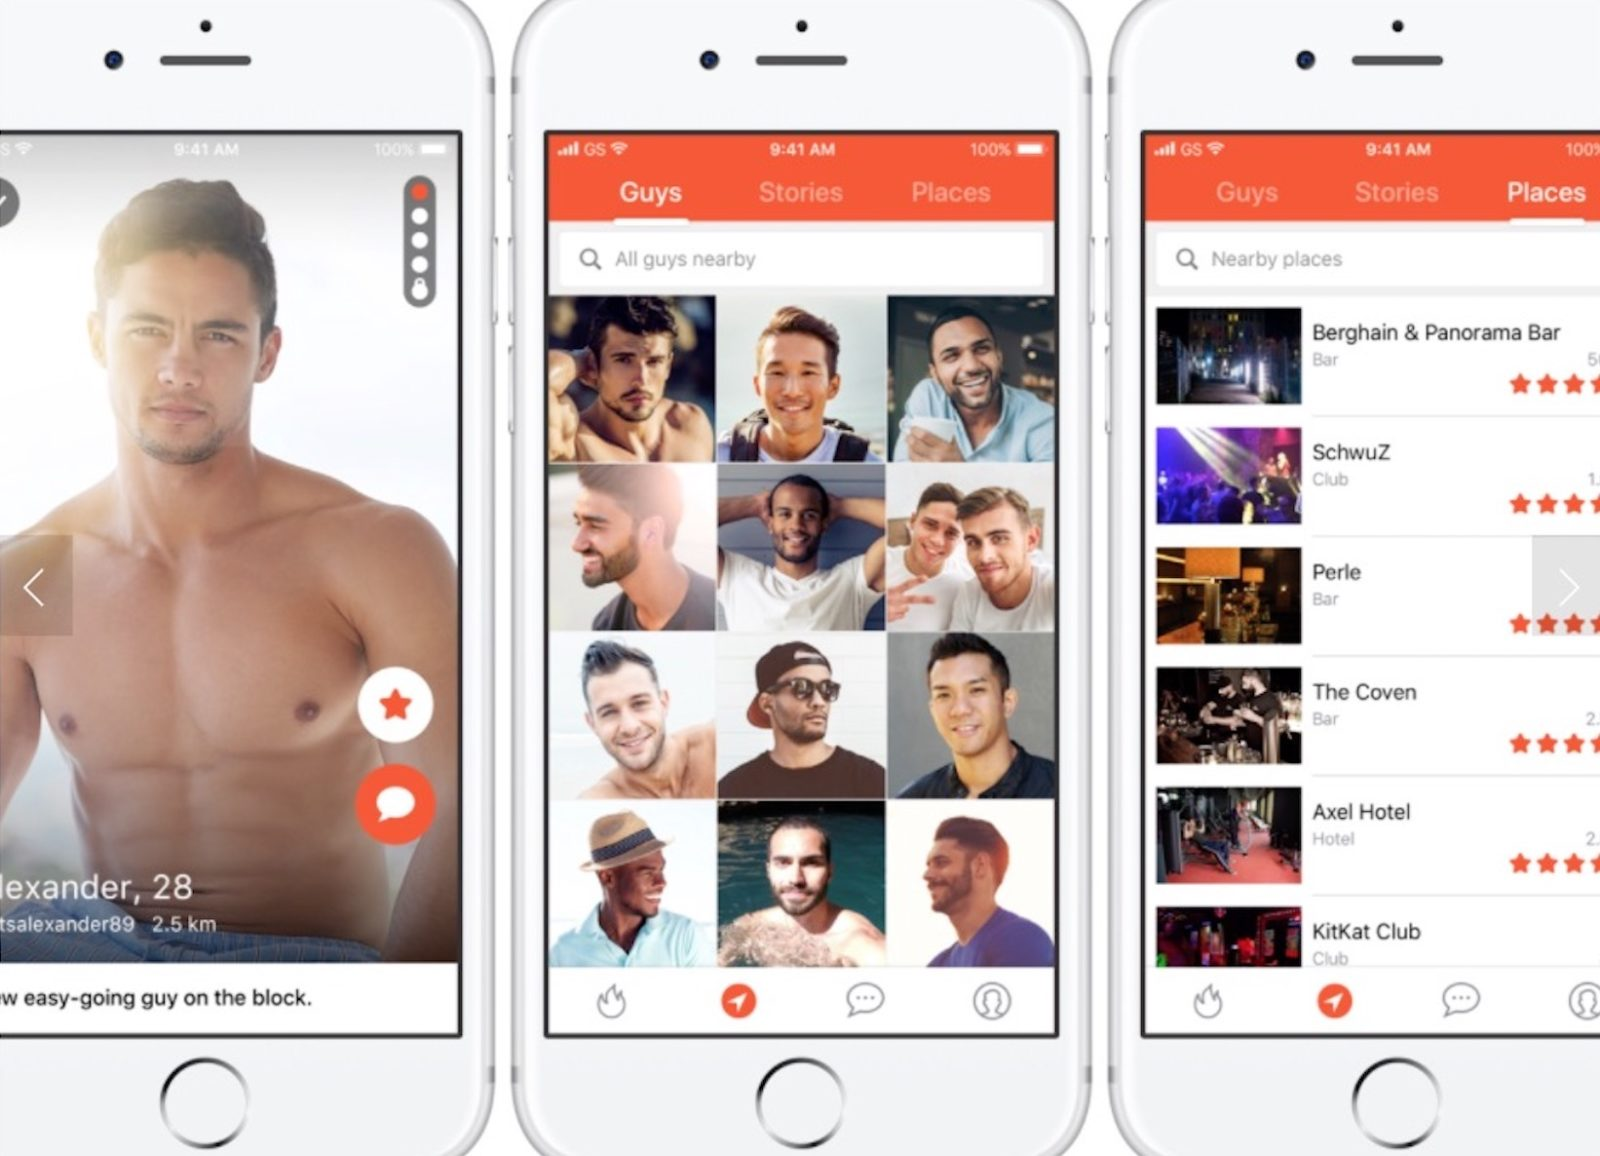 What It's Like to Use Dating Apps as a Gay